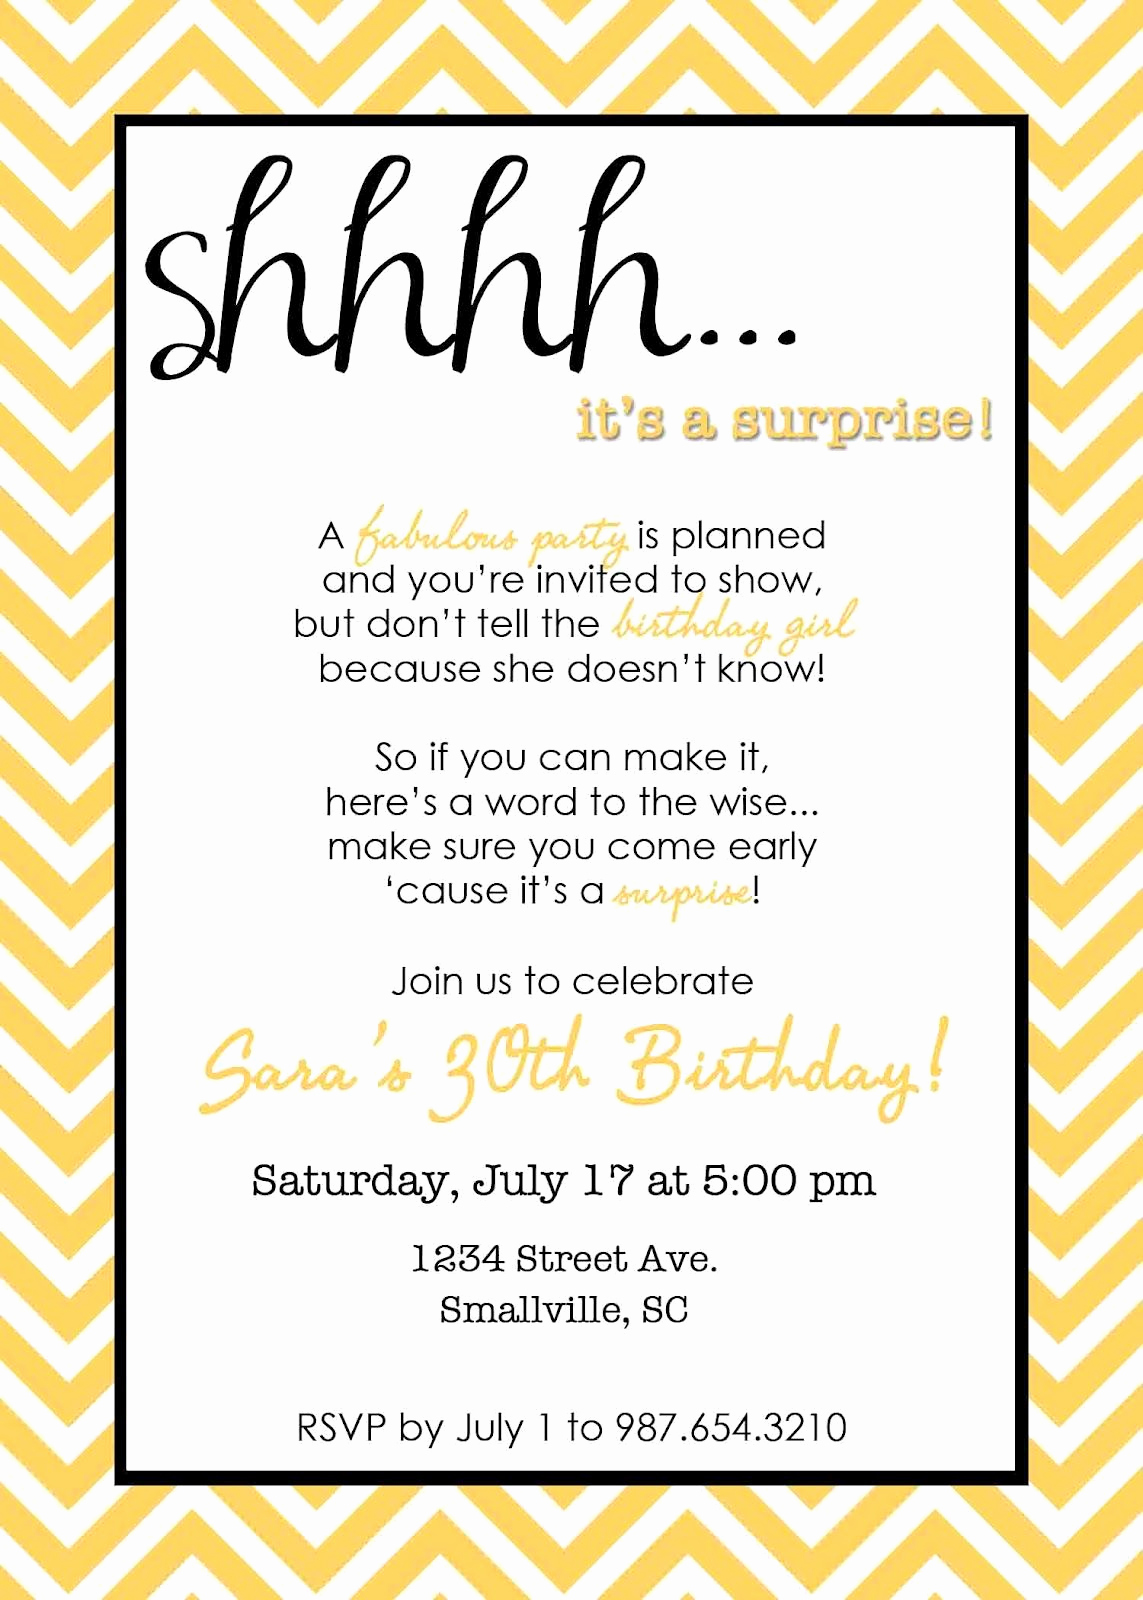 Surprise Birthday Invitation Wording New Wording for Surprise Birthday Party